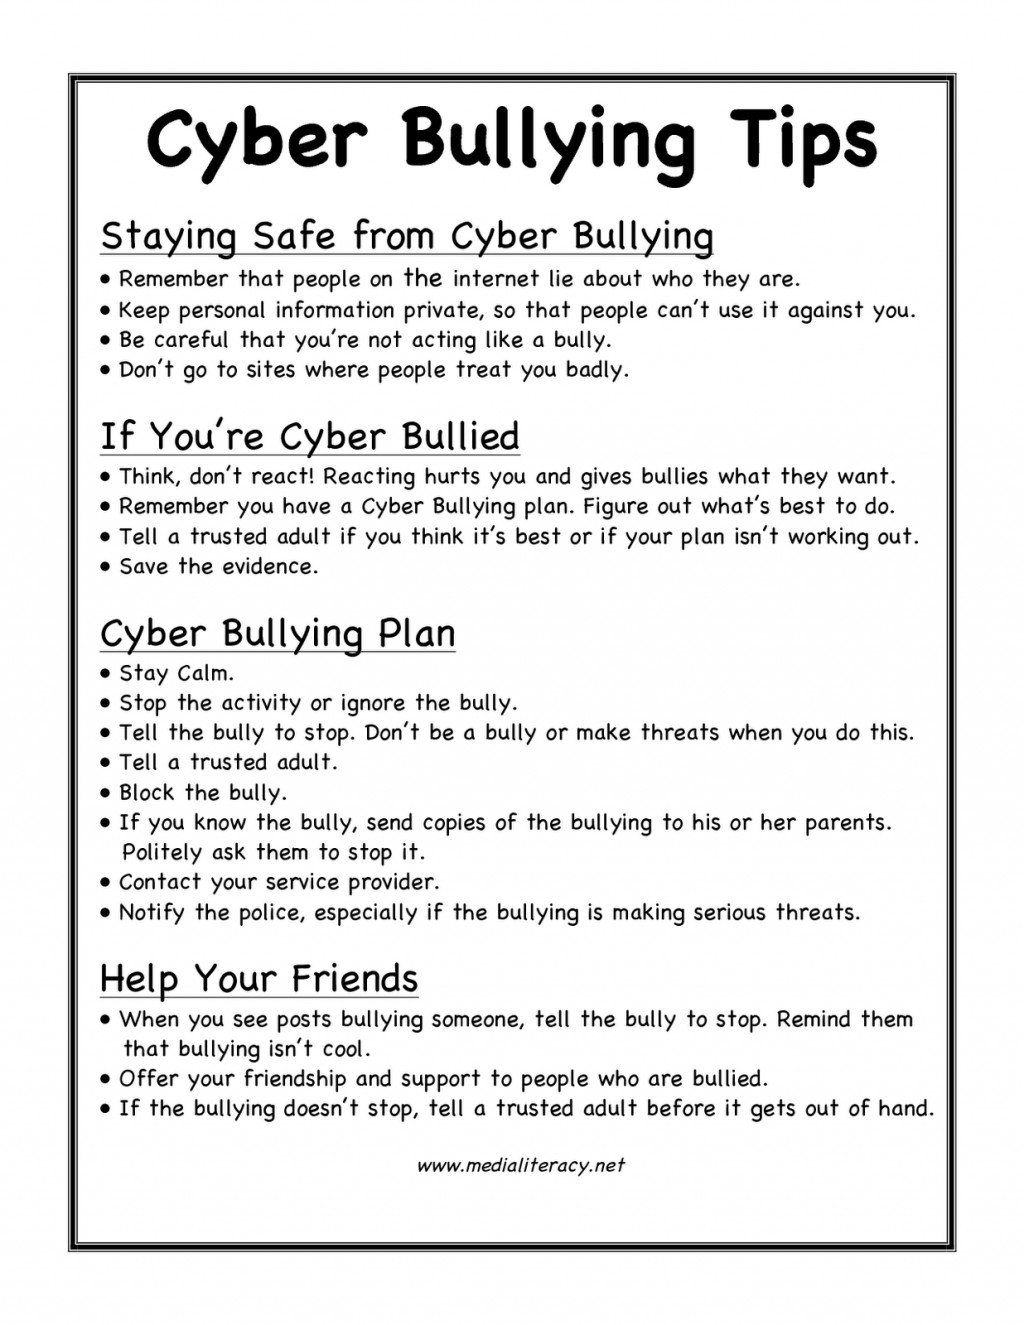 003 Cyberbullying Worksheets 424901 Essay Beautiful Conclusion Paragraph On Cyber Bullying Argumentative Topics Large